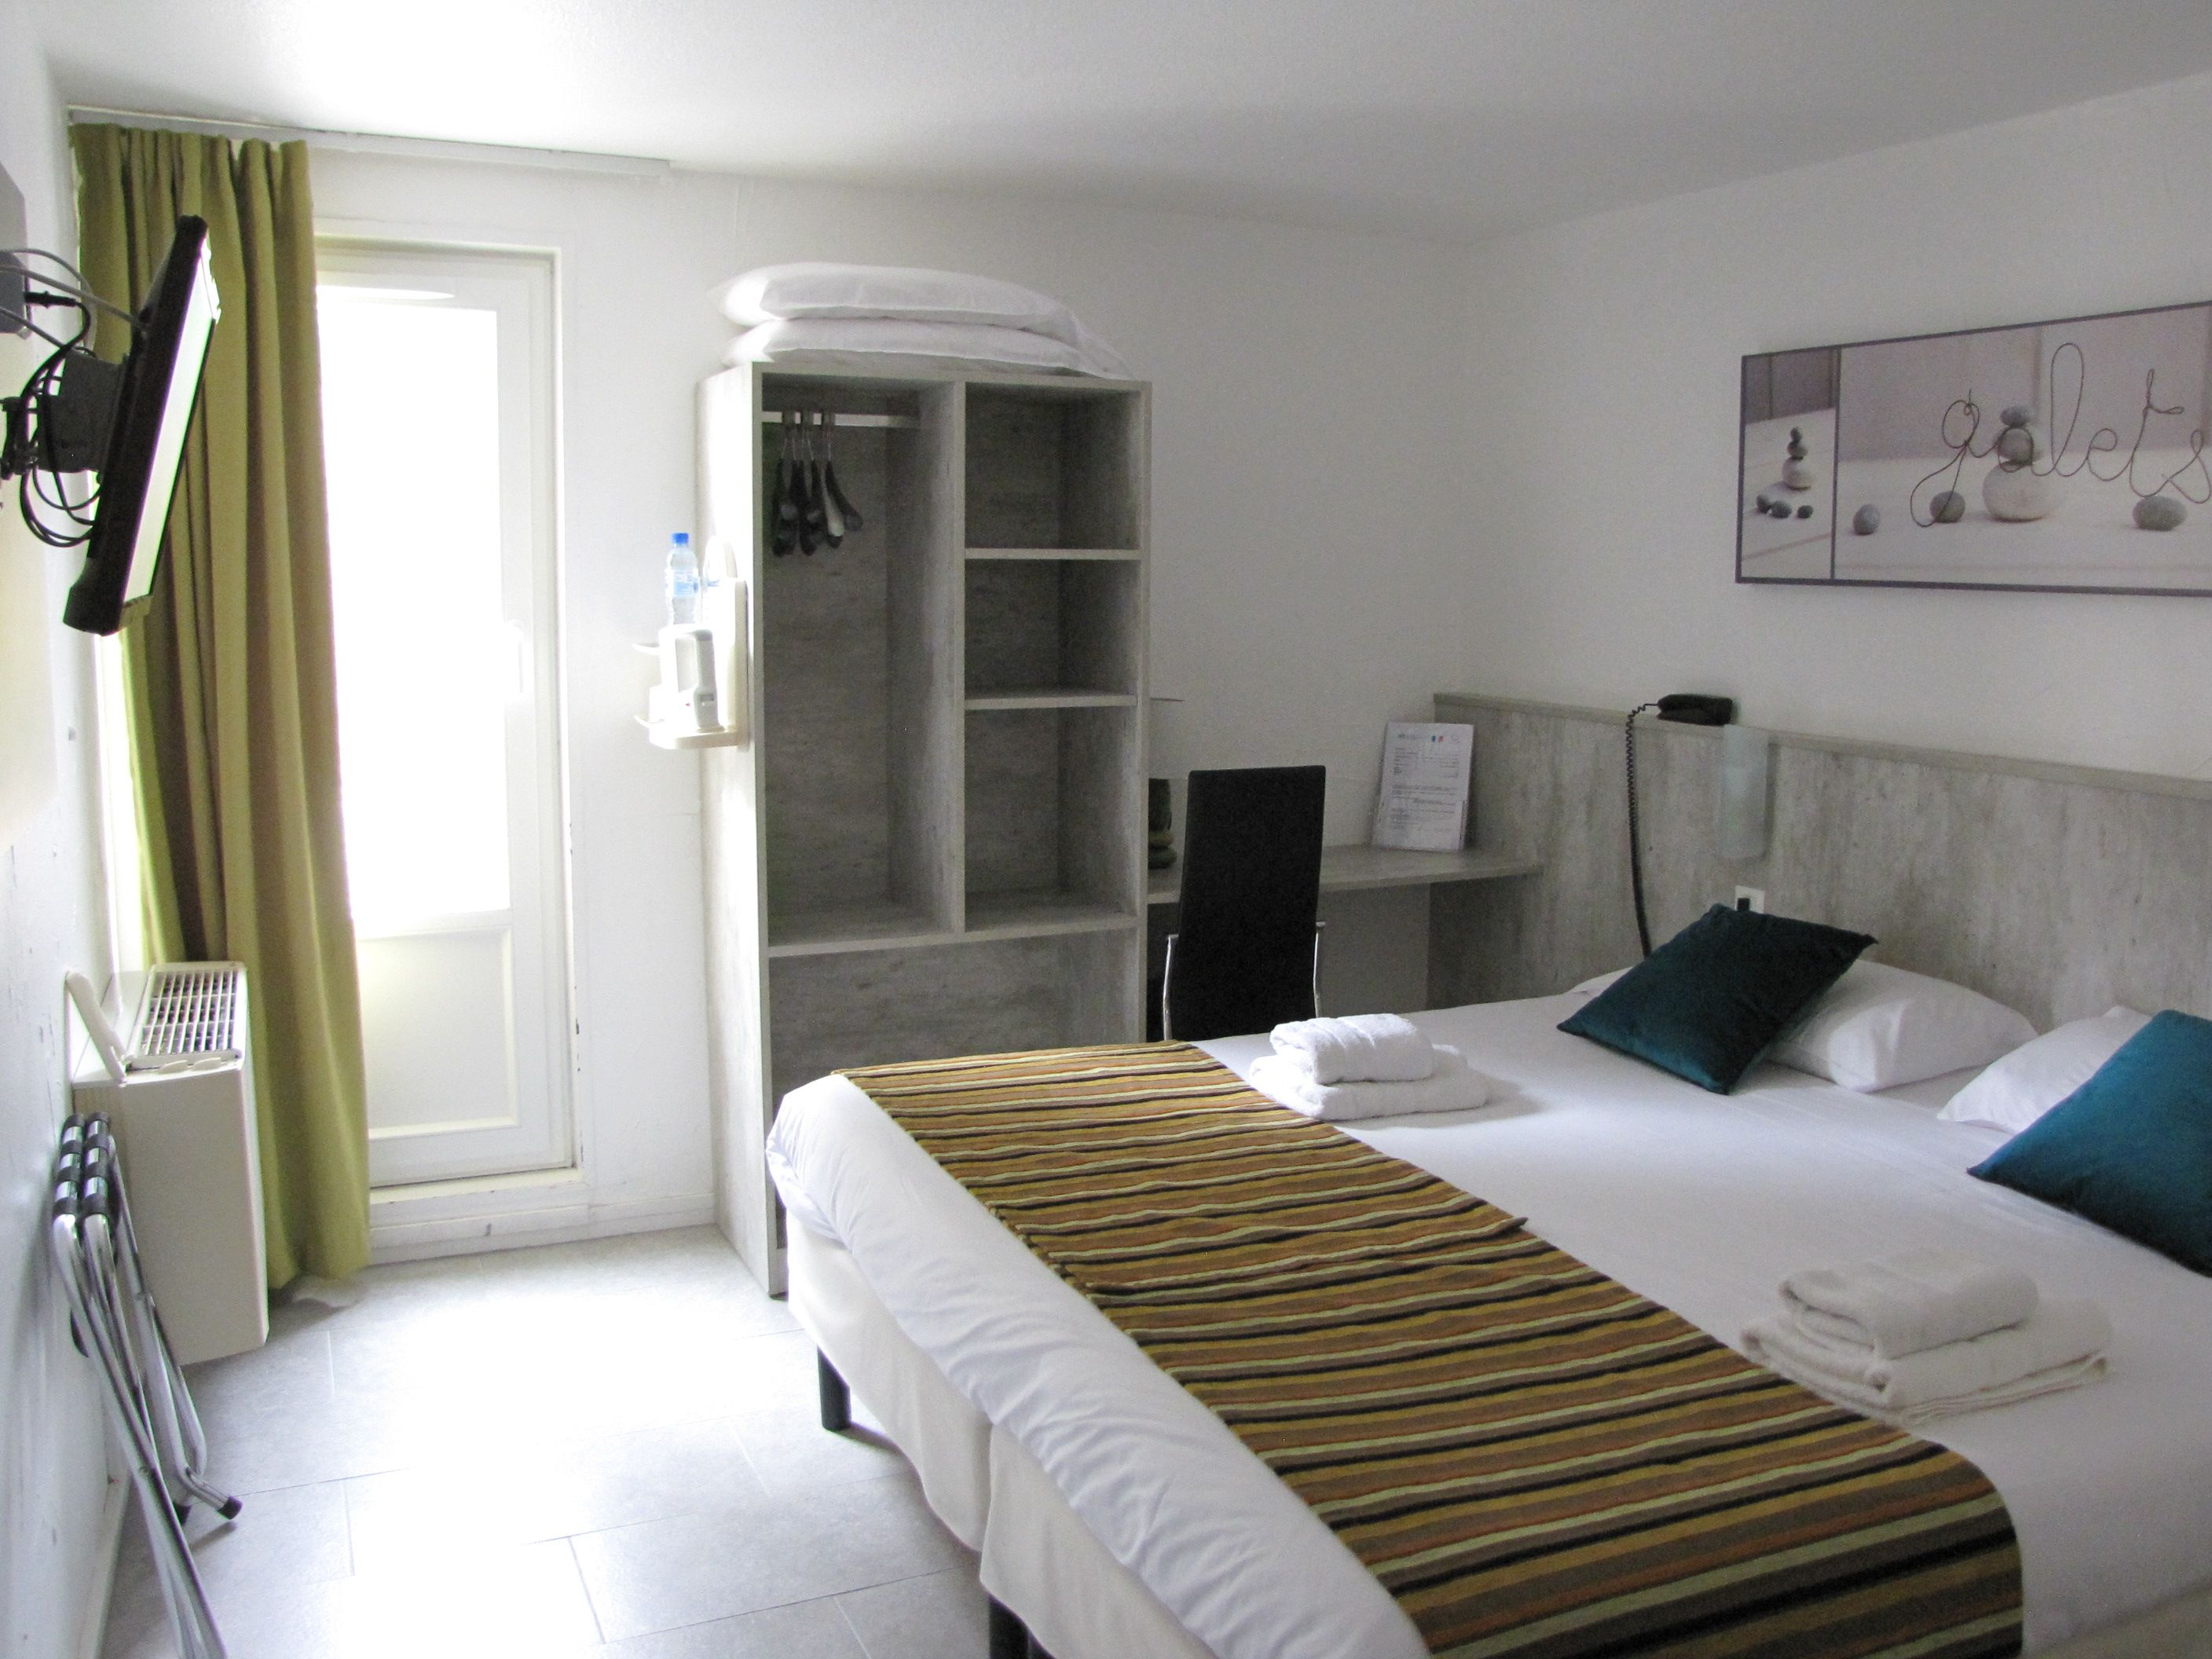 Photo Brit Hotel Bosquet Carcassonne